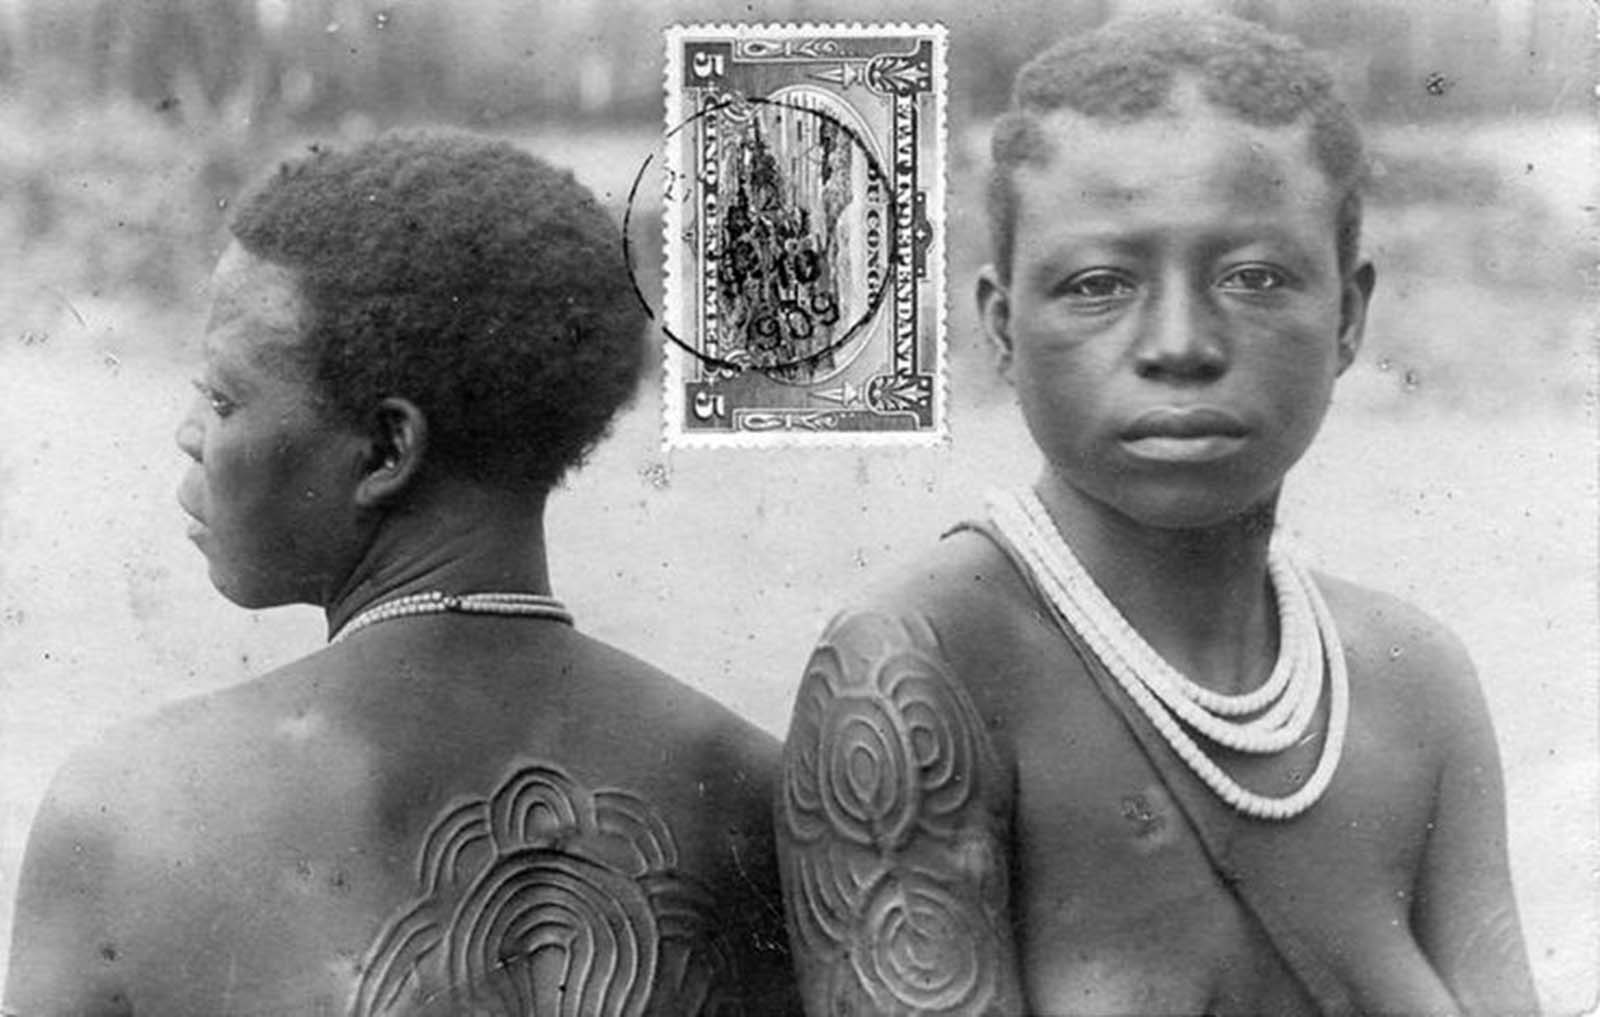 Postcards displaying indigenous forms of body decoration were also popular.